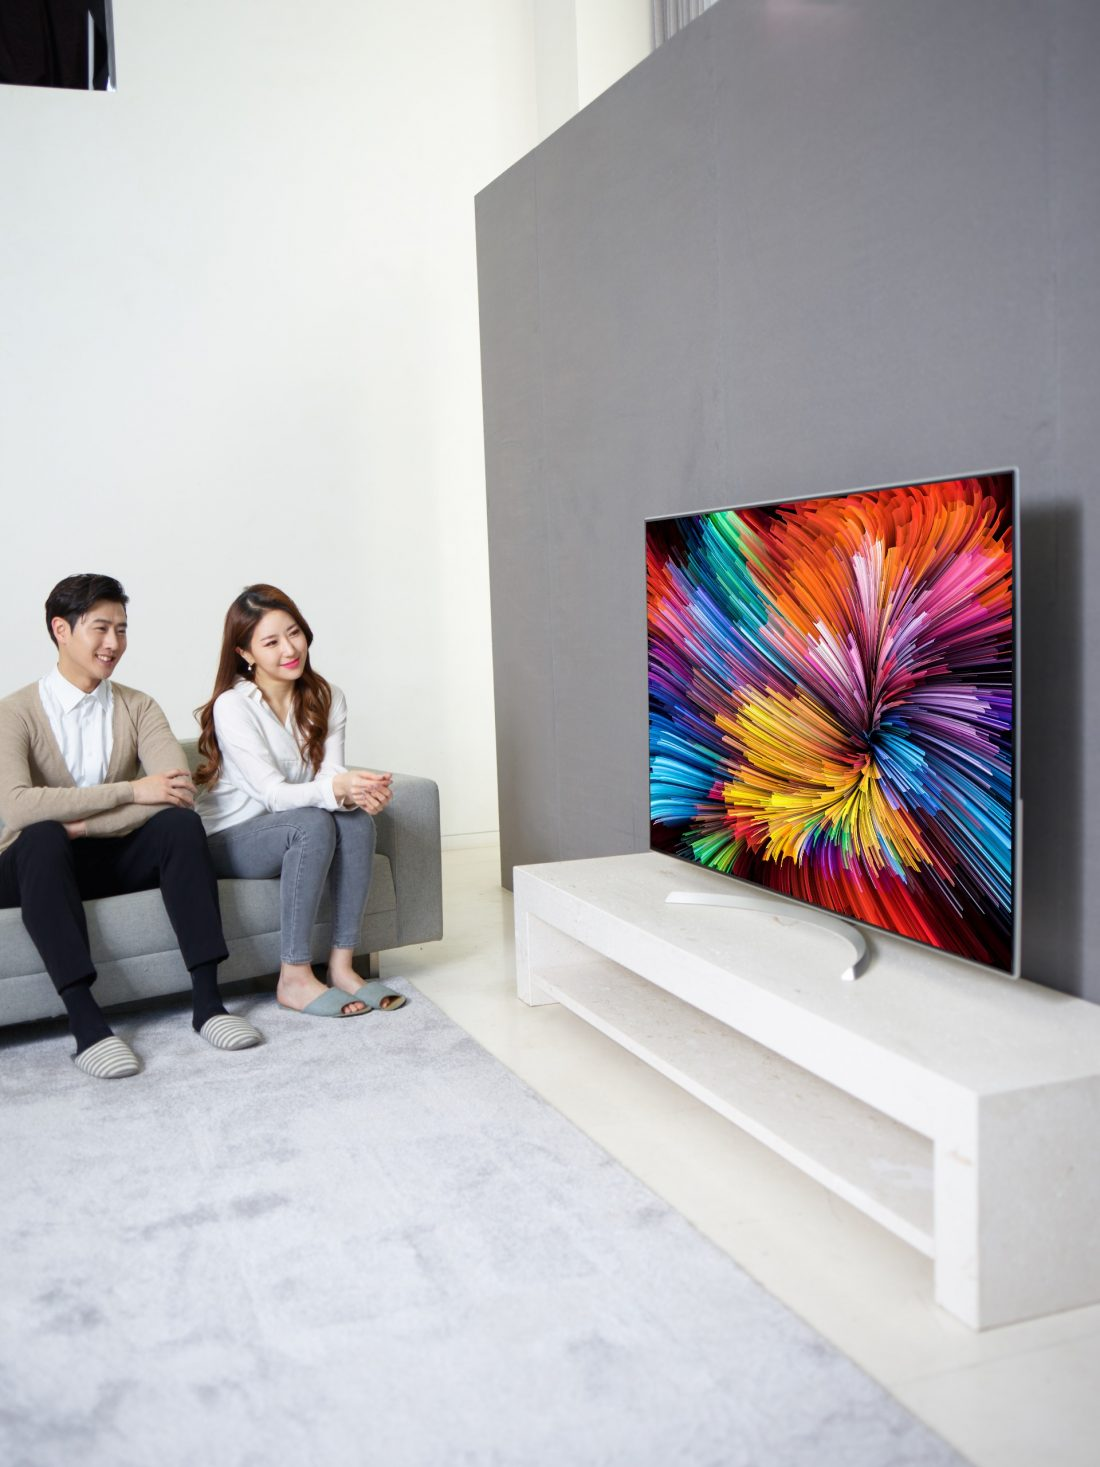 Another different shot of a couple sitting on a couch watching the LG SUPER UHD TV (model SJ95)